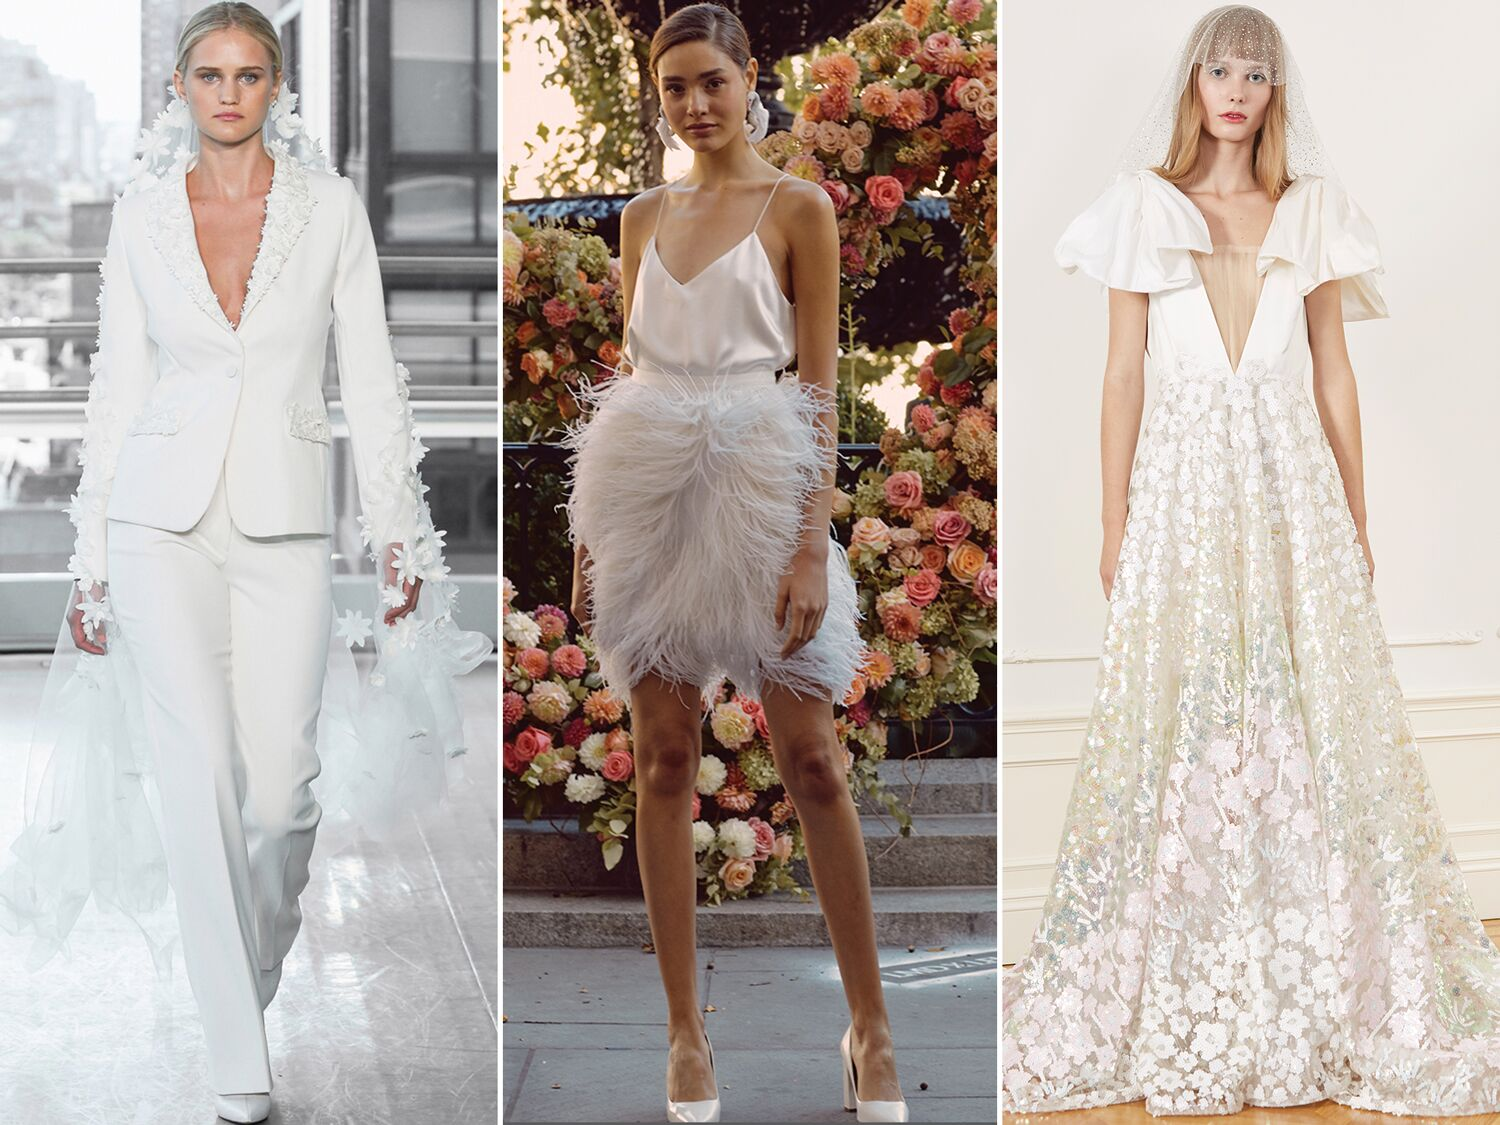 The Wedding Dress Trends 2020 2021 Brides Need To See,Summer Casual Beach Wedding Dresses